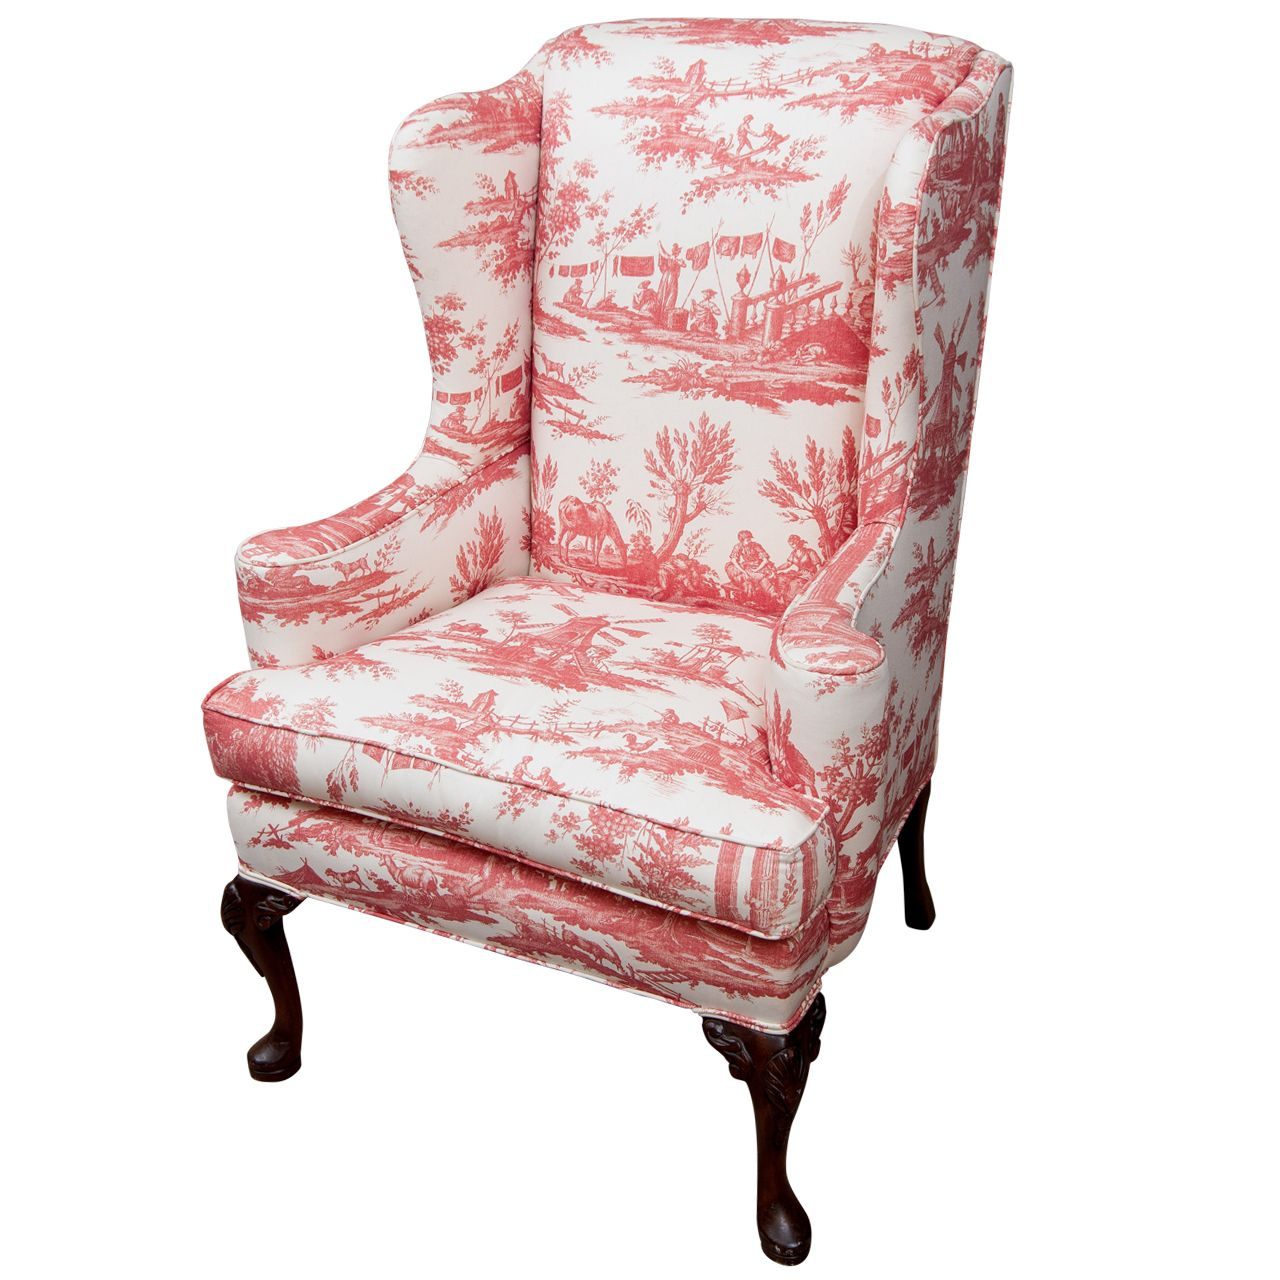 Toile Chair Queen Anne Style Wing Chair Queen Anne Toile And Queens